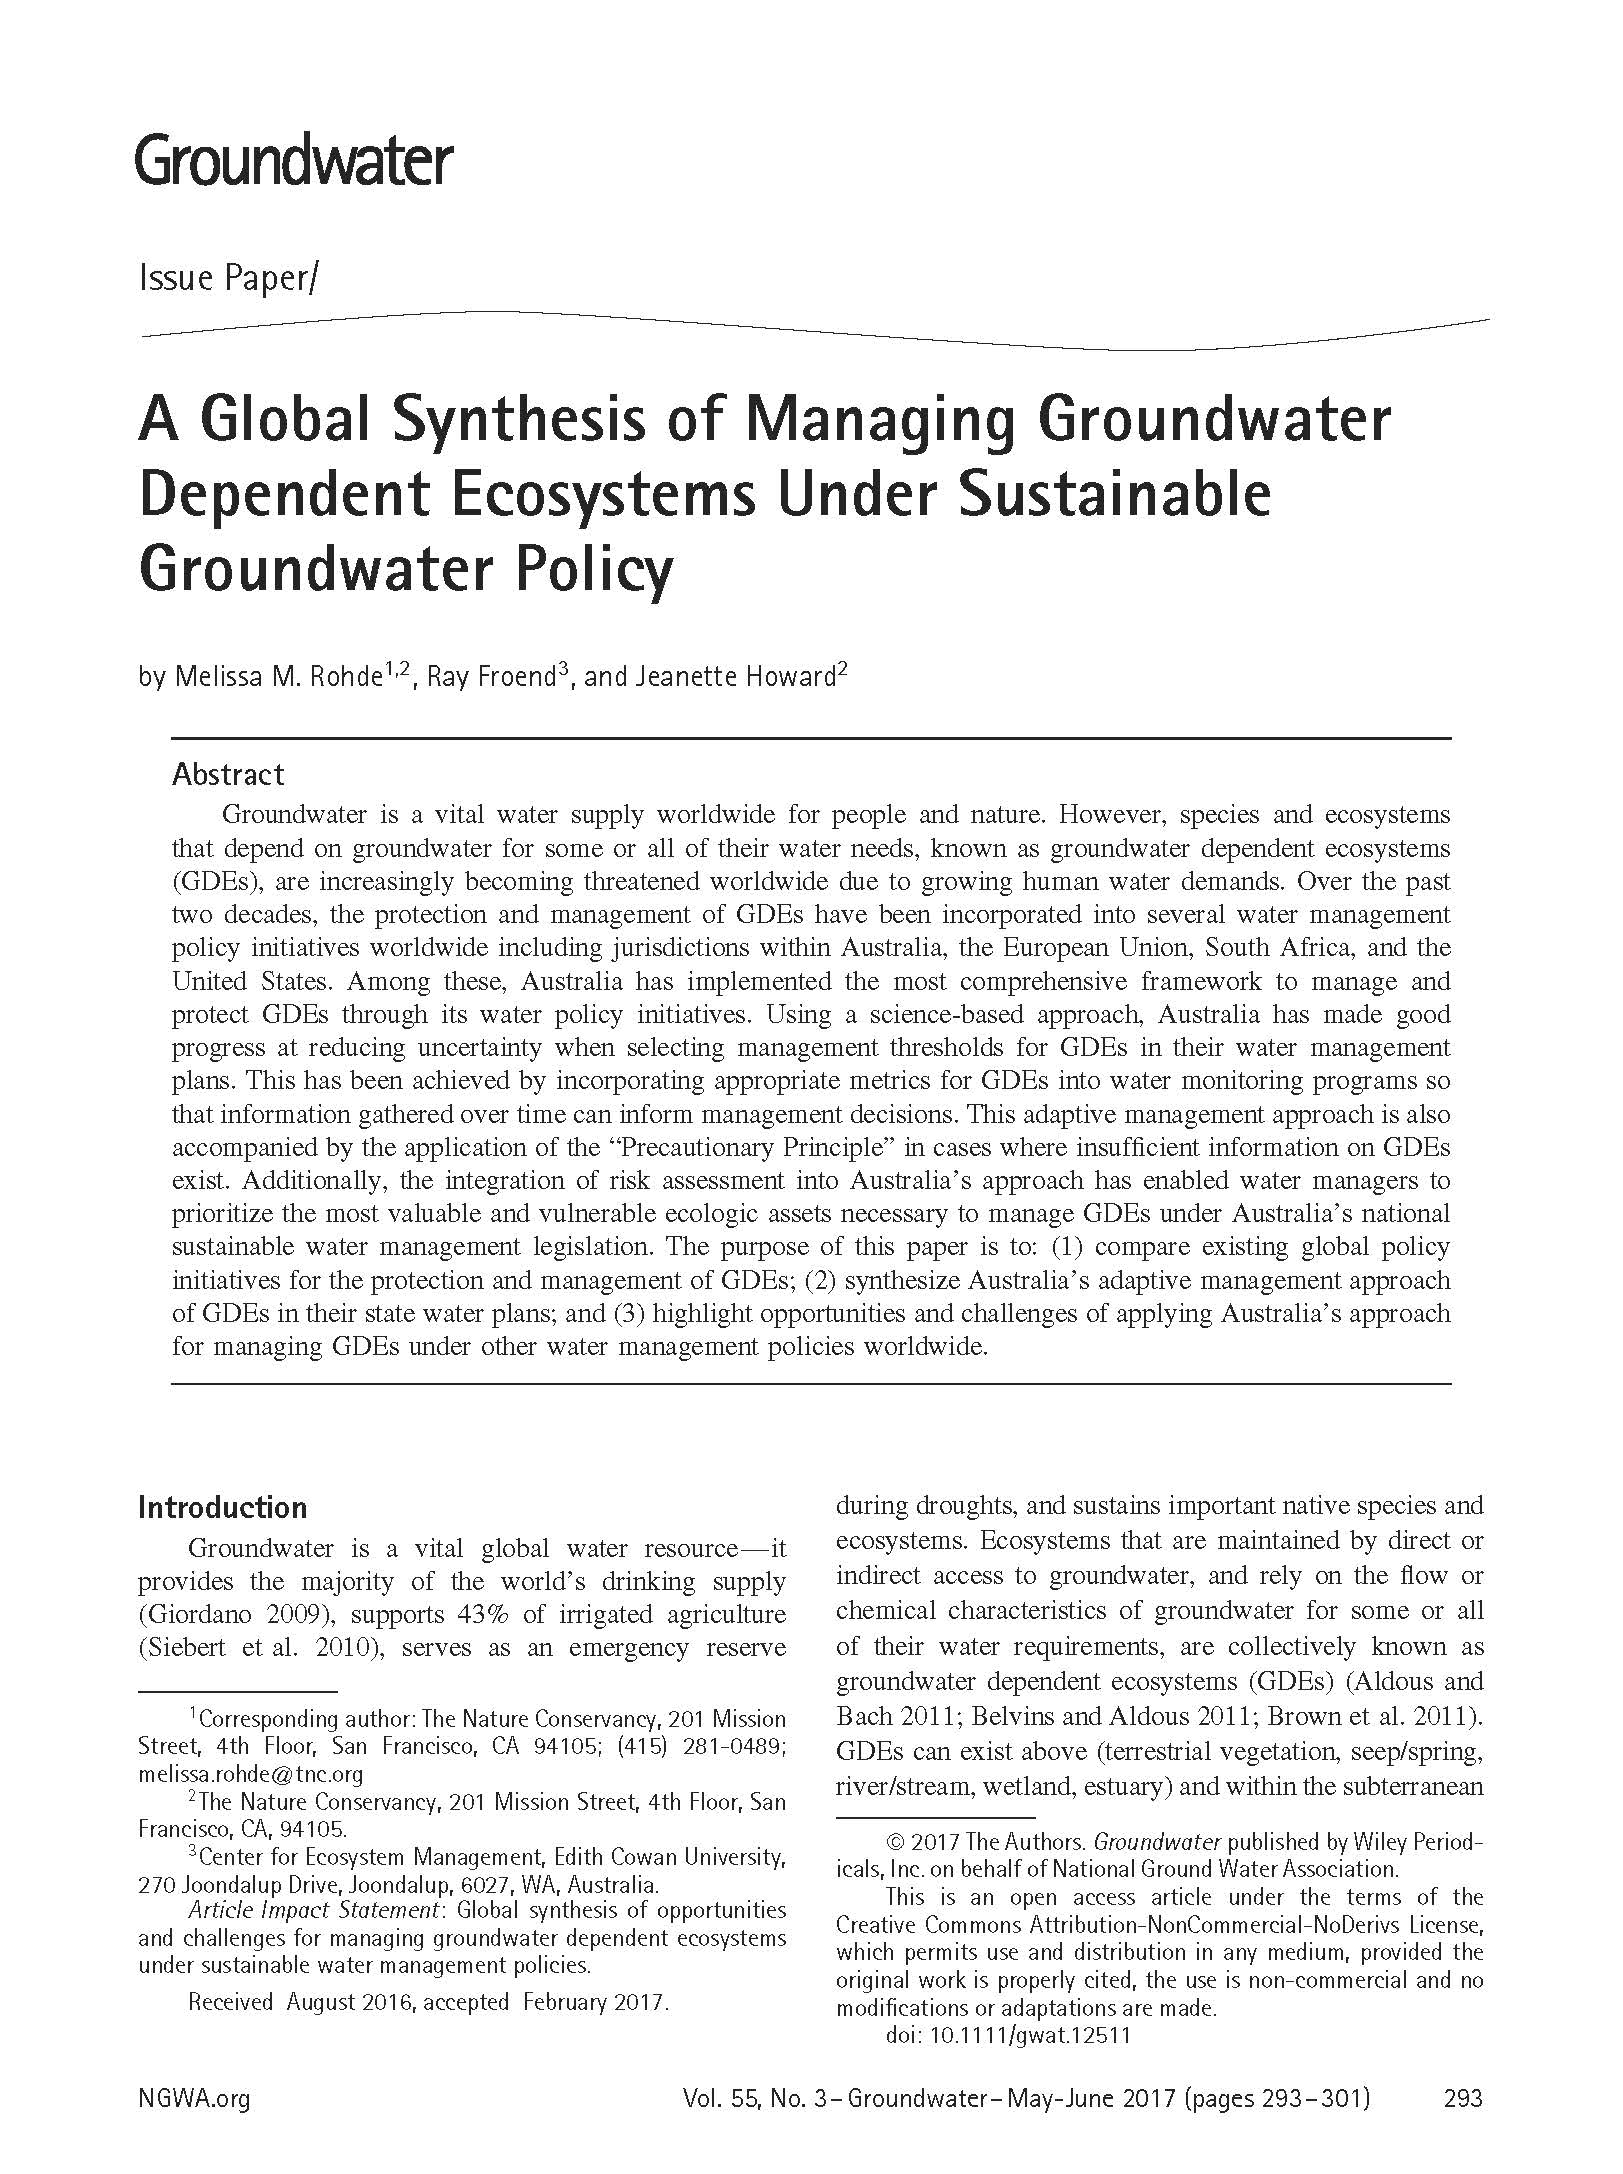 Rohde_et_al-2017-Groundwater_Page_1.jpg